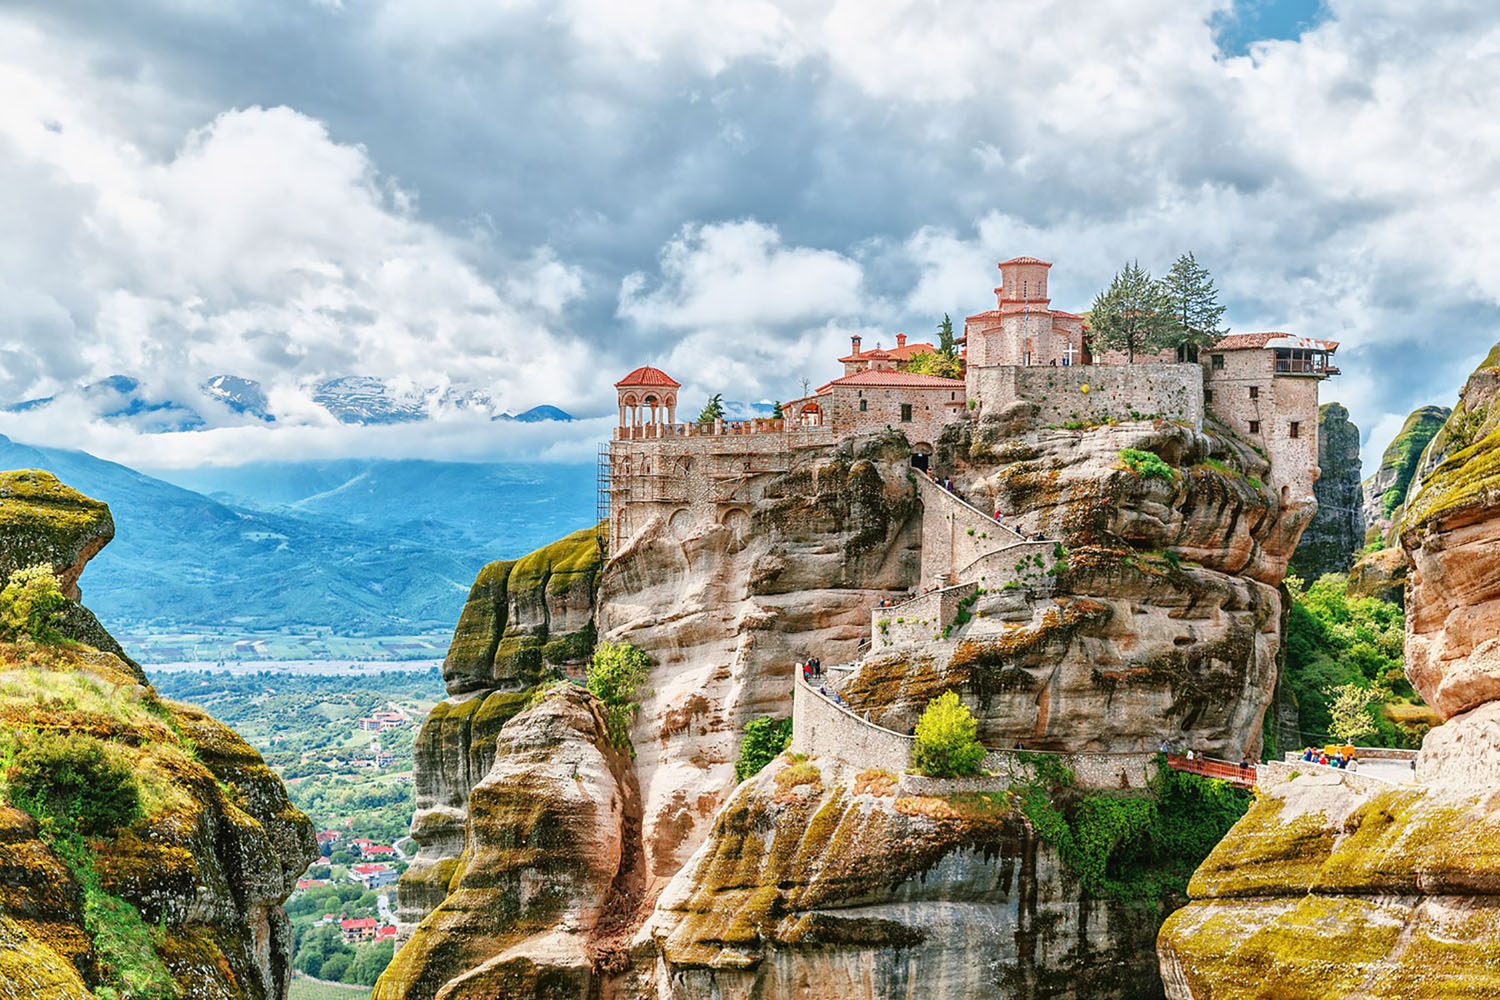 The Meteora Monasteries atop a cliff in Meteora, Greece